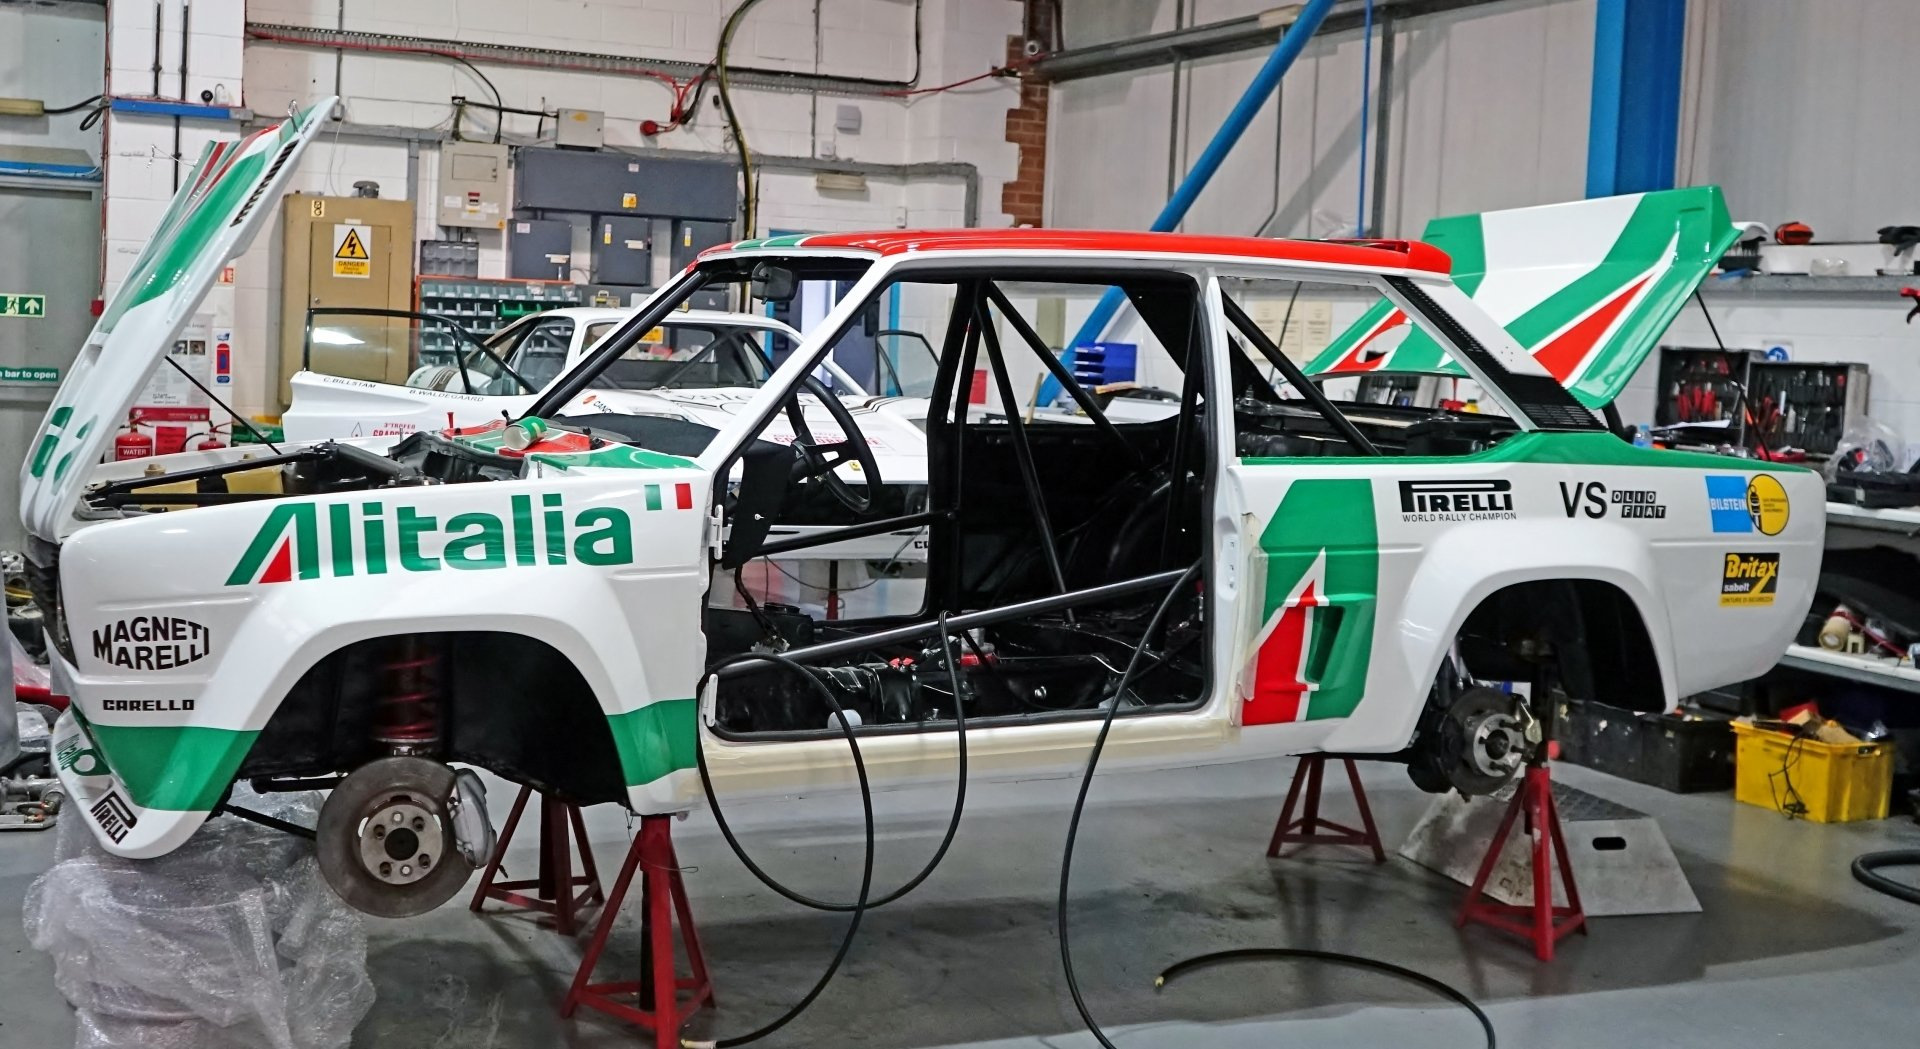 fiat-131-abarth-grp-4-rally-car-21